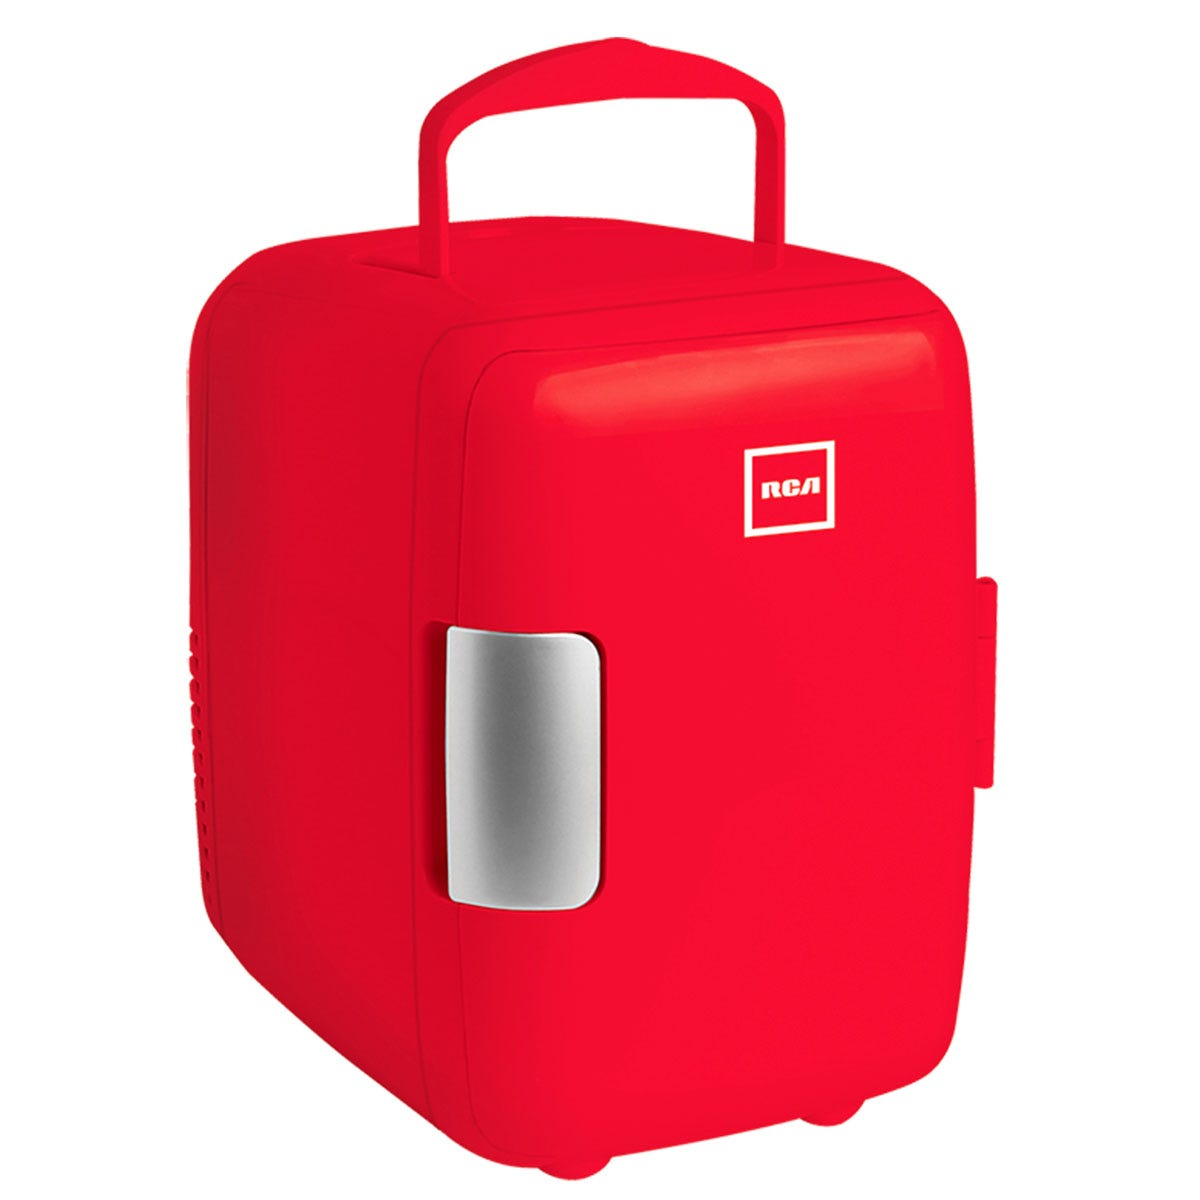 Mini refrigerador RCA color rojo